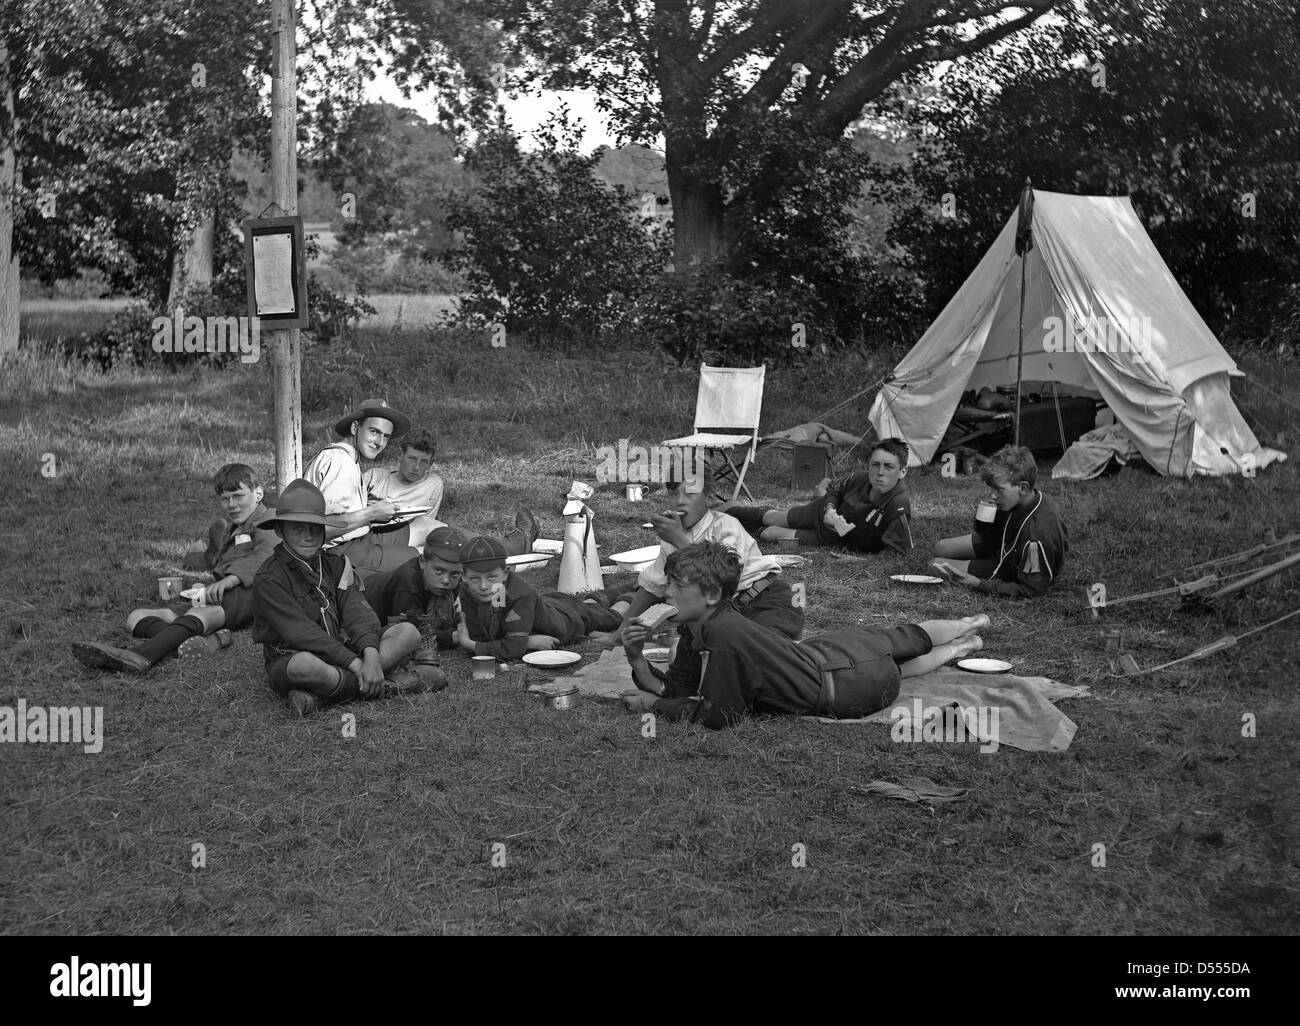 Boy scouts camp, c. 1930 with tent pitched and the scouts and scout master eating sandwiches - Stock Image